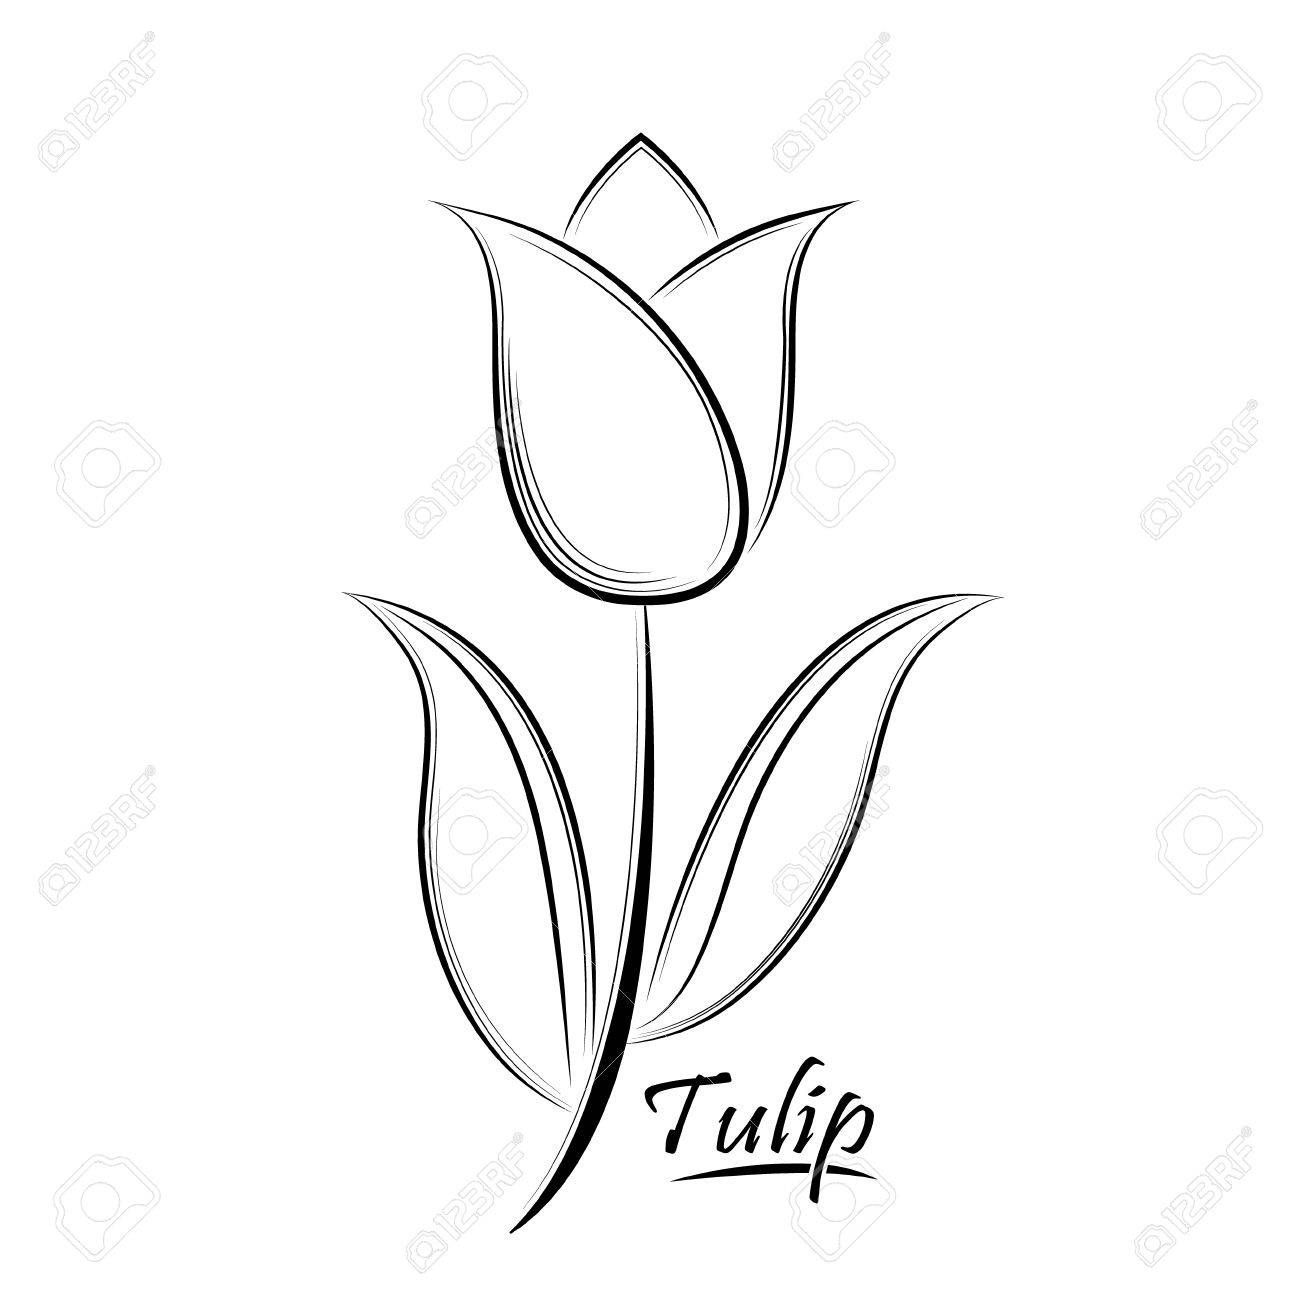 Vector Black Contour Of A Tulip Flower Isolated On A White Background 63663113 In 2021 White Background Images Clipart Black And White Banner Printing